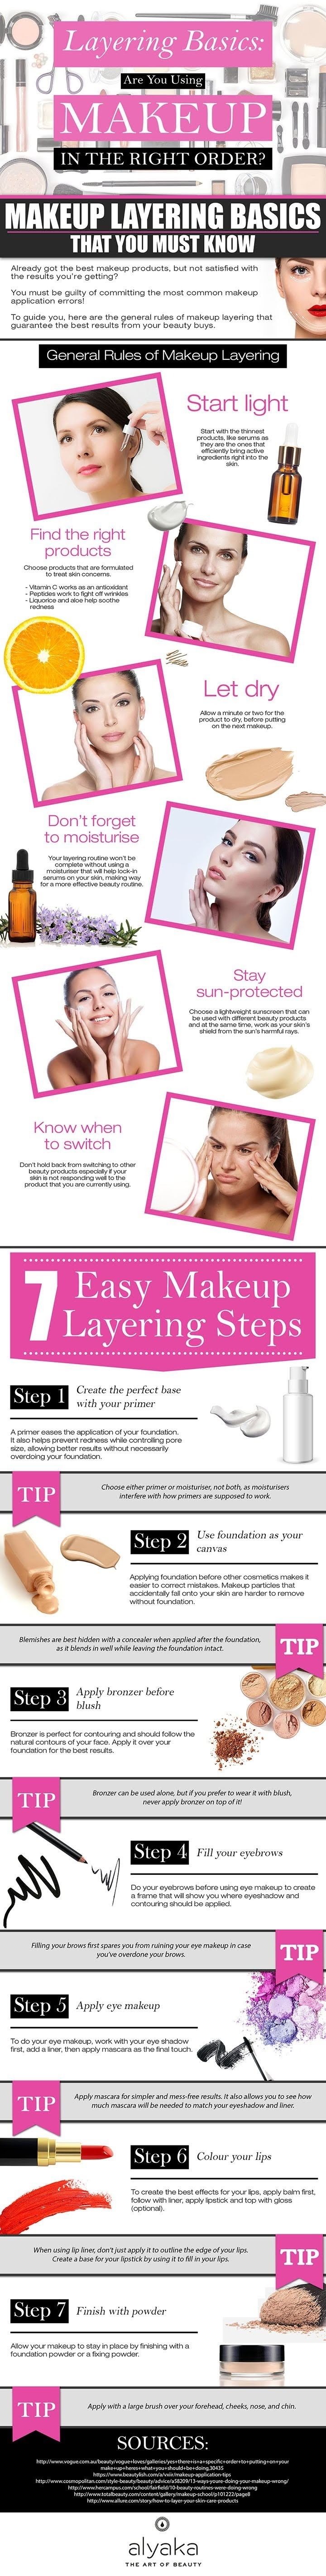 Layering Basics: Are You in the Right Order Using Makeup? #Infographic